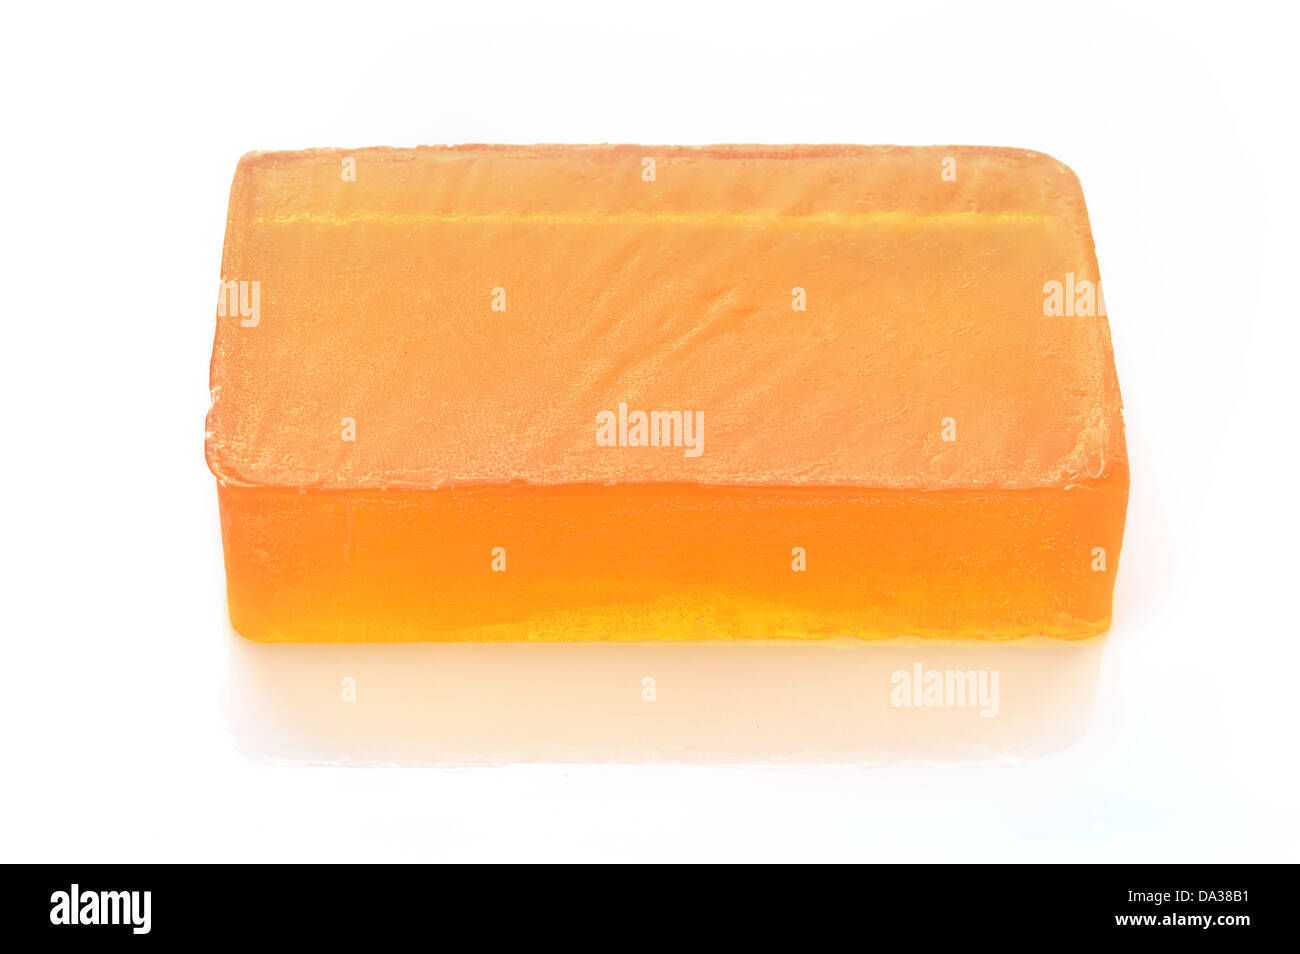 Orange handmade glycerin soap on white background. Hypoallergenic soap with marigold extract. Beauty care. - Stock Image